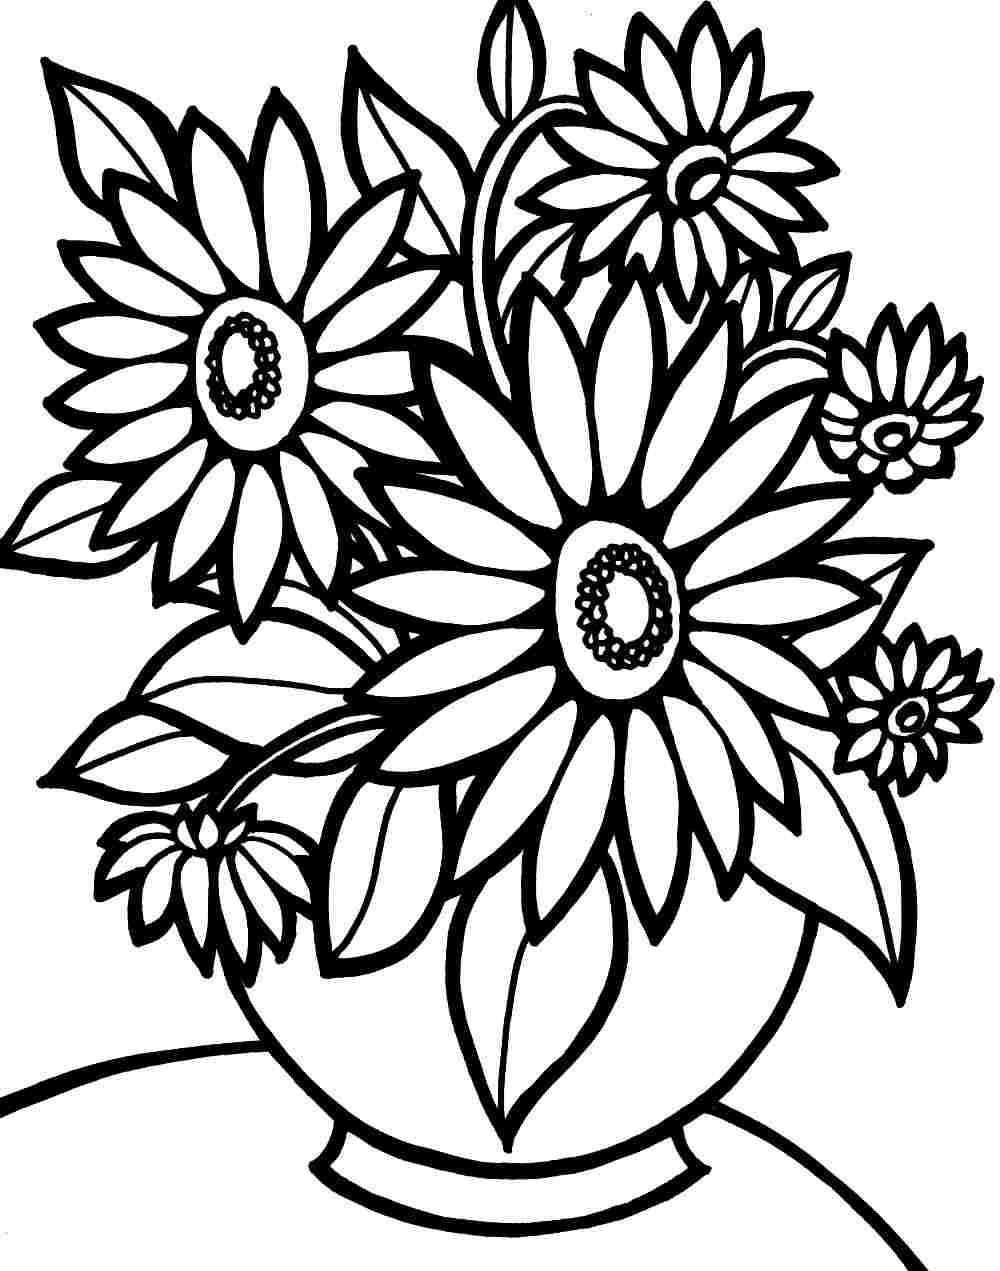 Bathroom Design Large Print Coloring Books For Seniors Free With Dementia A Printable Flower Coloring Pages Easy Coloring Pages Kids Printable Coloring Pages